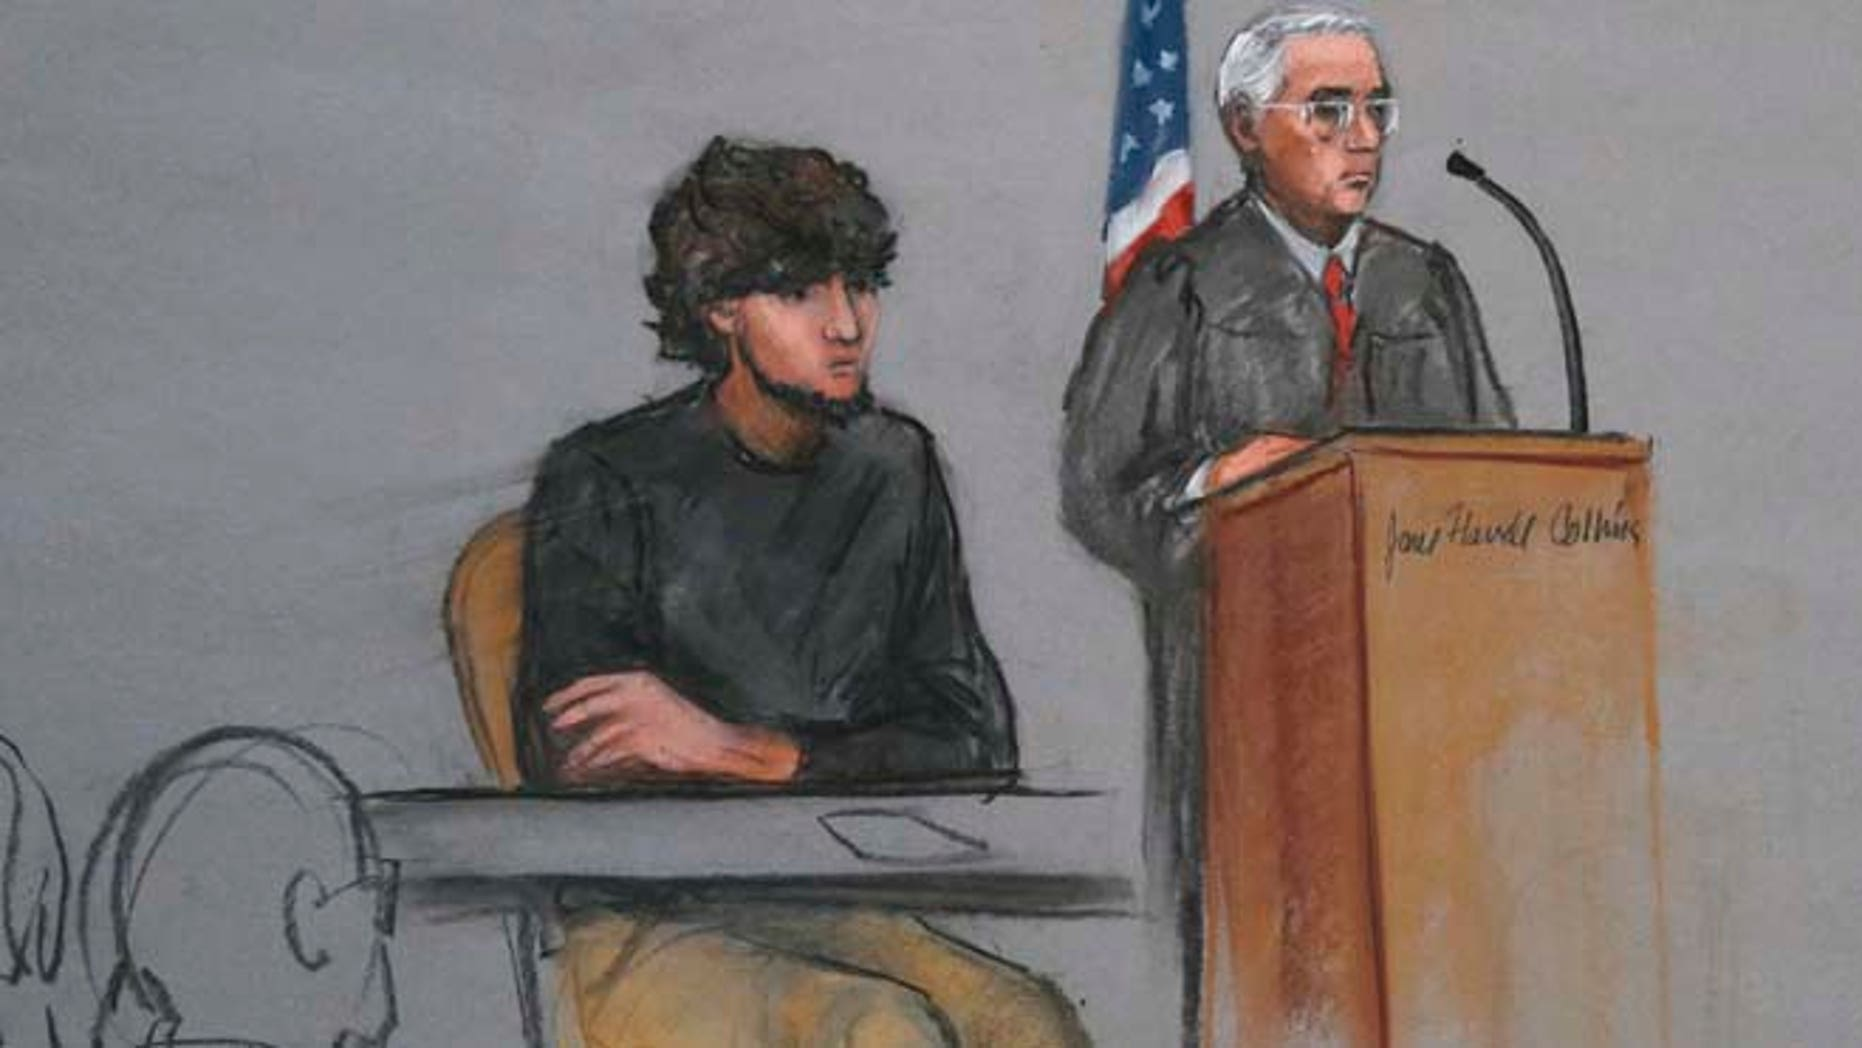 Jan. 5, 2015: Boston Marathon bombing suspect Dzhokhar Tsarnaev, left, is depicted beside U.S. District Judge George O'Toole Jr., right, as O'Toole addresses a pool of potential jurors in a jury assembly room at the federal courthouse, in Boston.